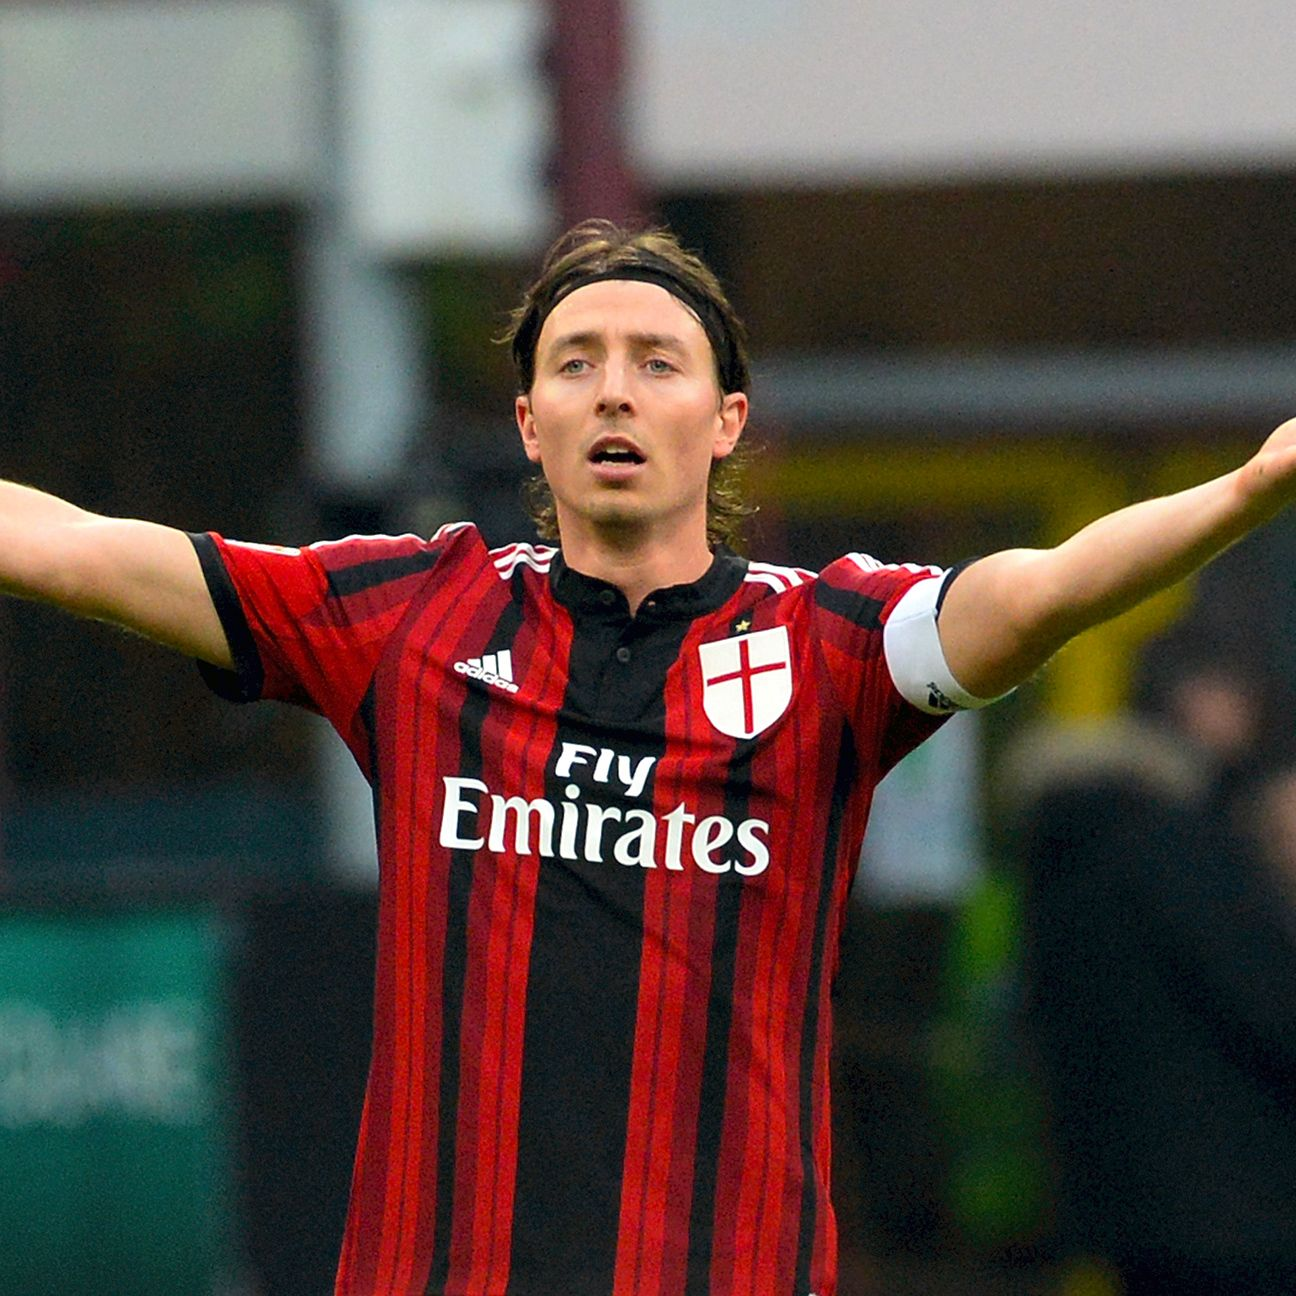 Riccardo Montolivo and AC Milan are starting to fade away from contention for a Champions League spot.